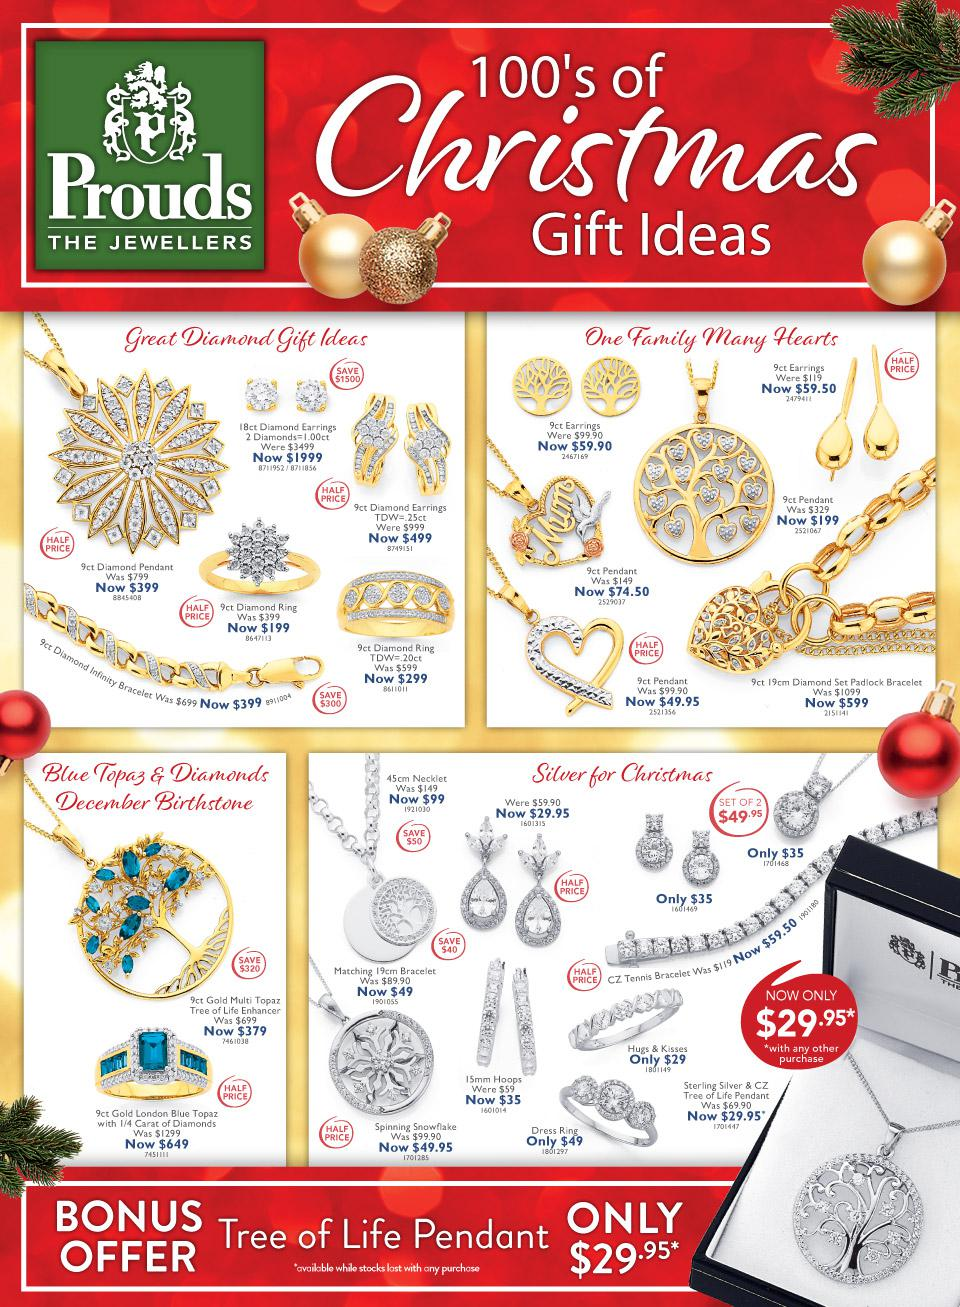 Prouds Catalogue 21 November - 24 December 2019. 100' Of Christmas Gift Ideas!